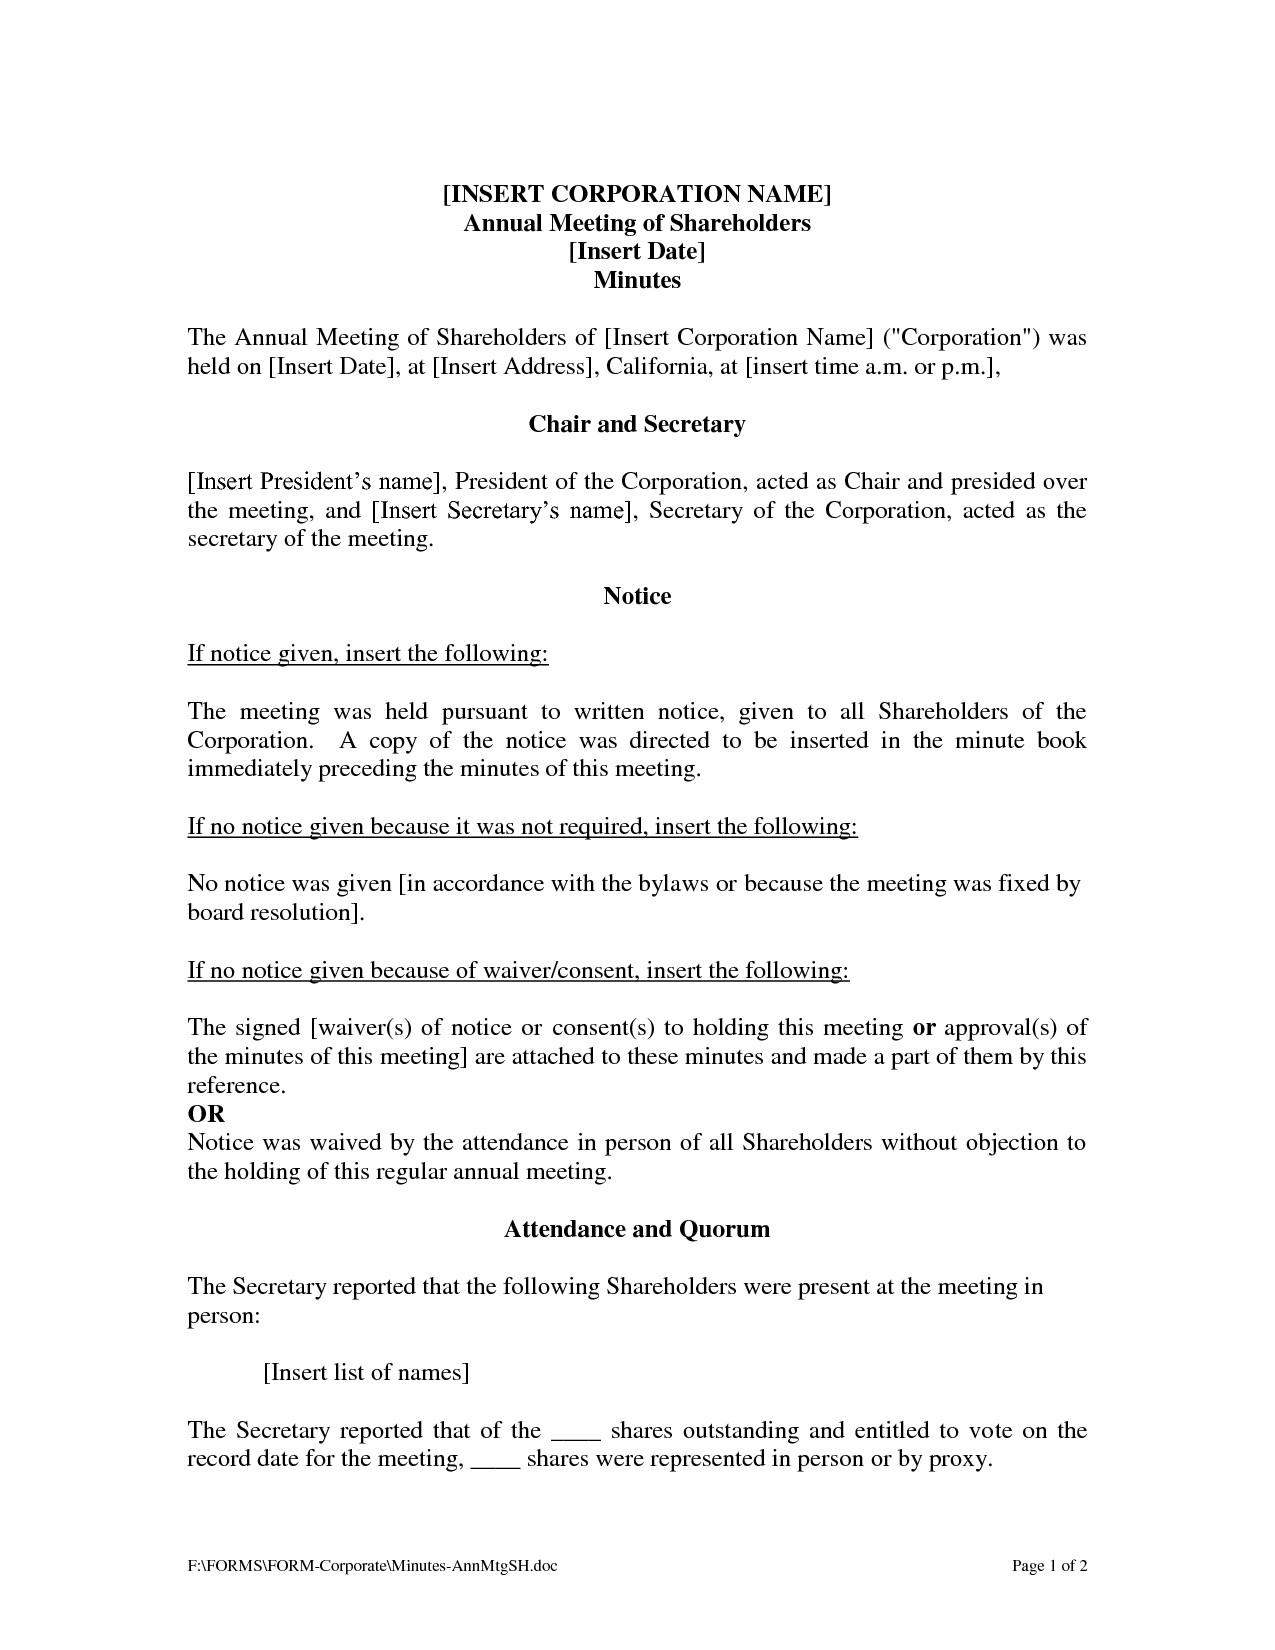 Corporate Authorization Resolution Template